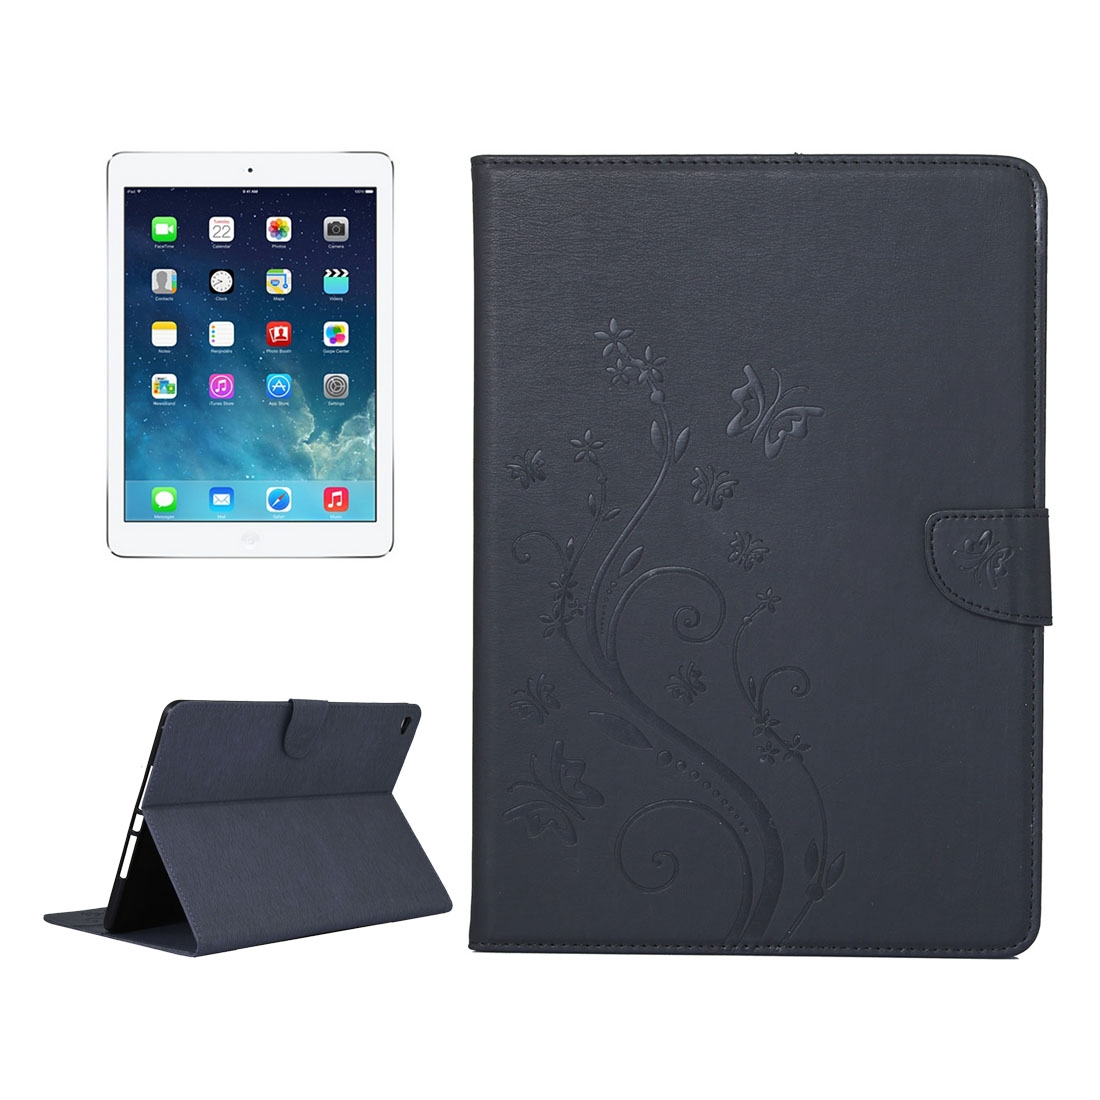 iPad Air 2 Case Floral Butterfly Leather Case with Magnetic Closure, Slim Profile (Black)